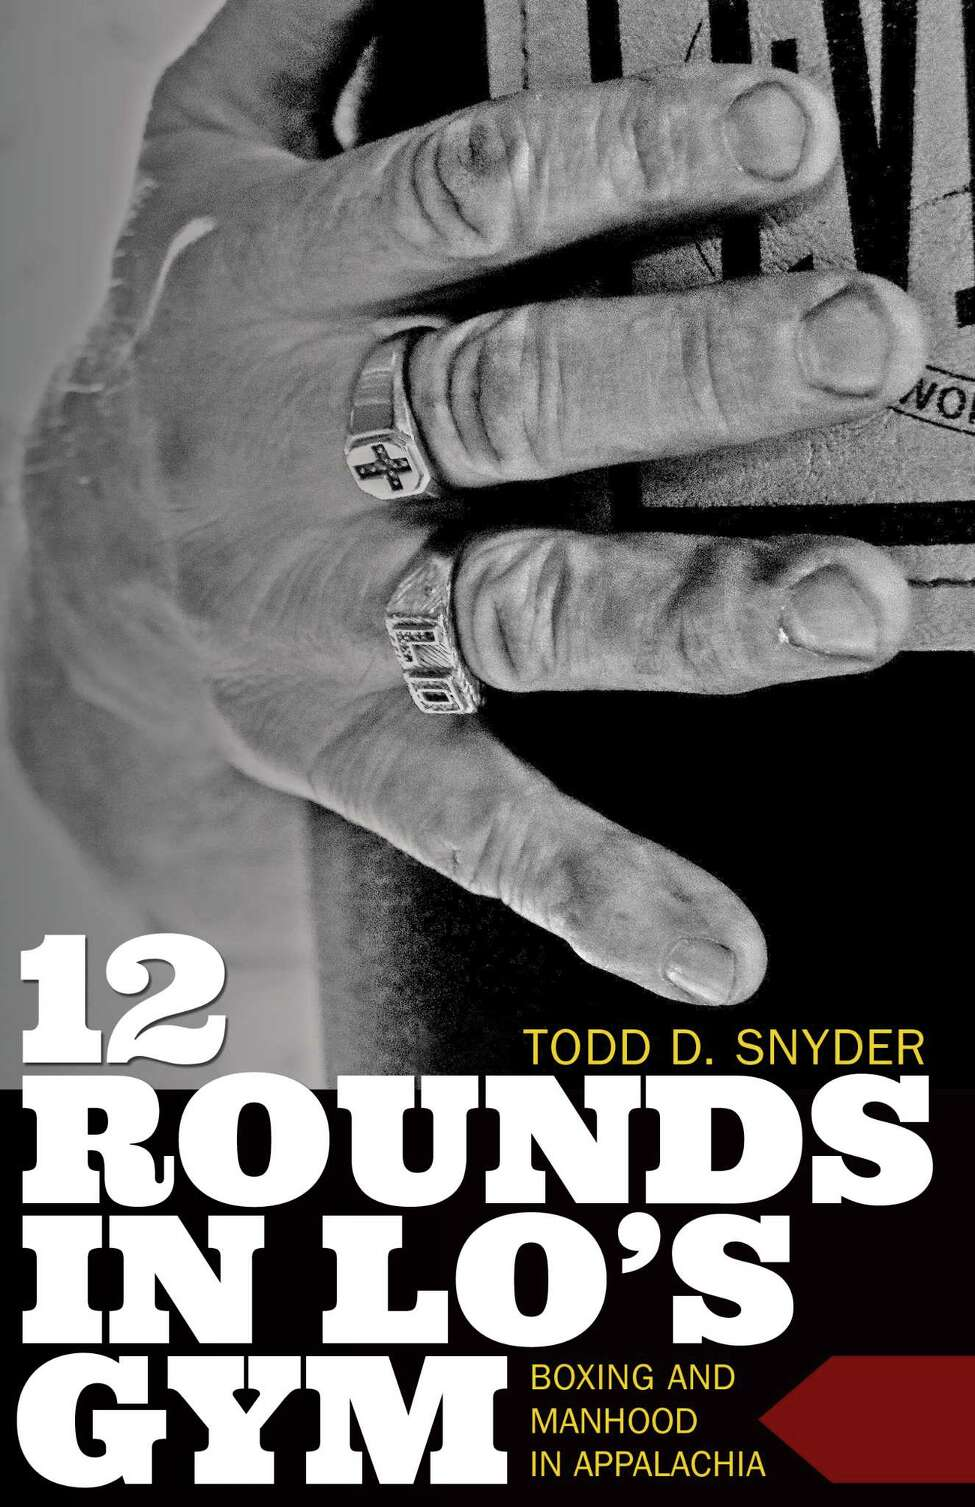 Todd Snyder, a Siena College professor, wrote about his experience being raised in his father's boxing gym in